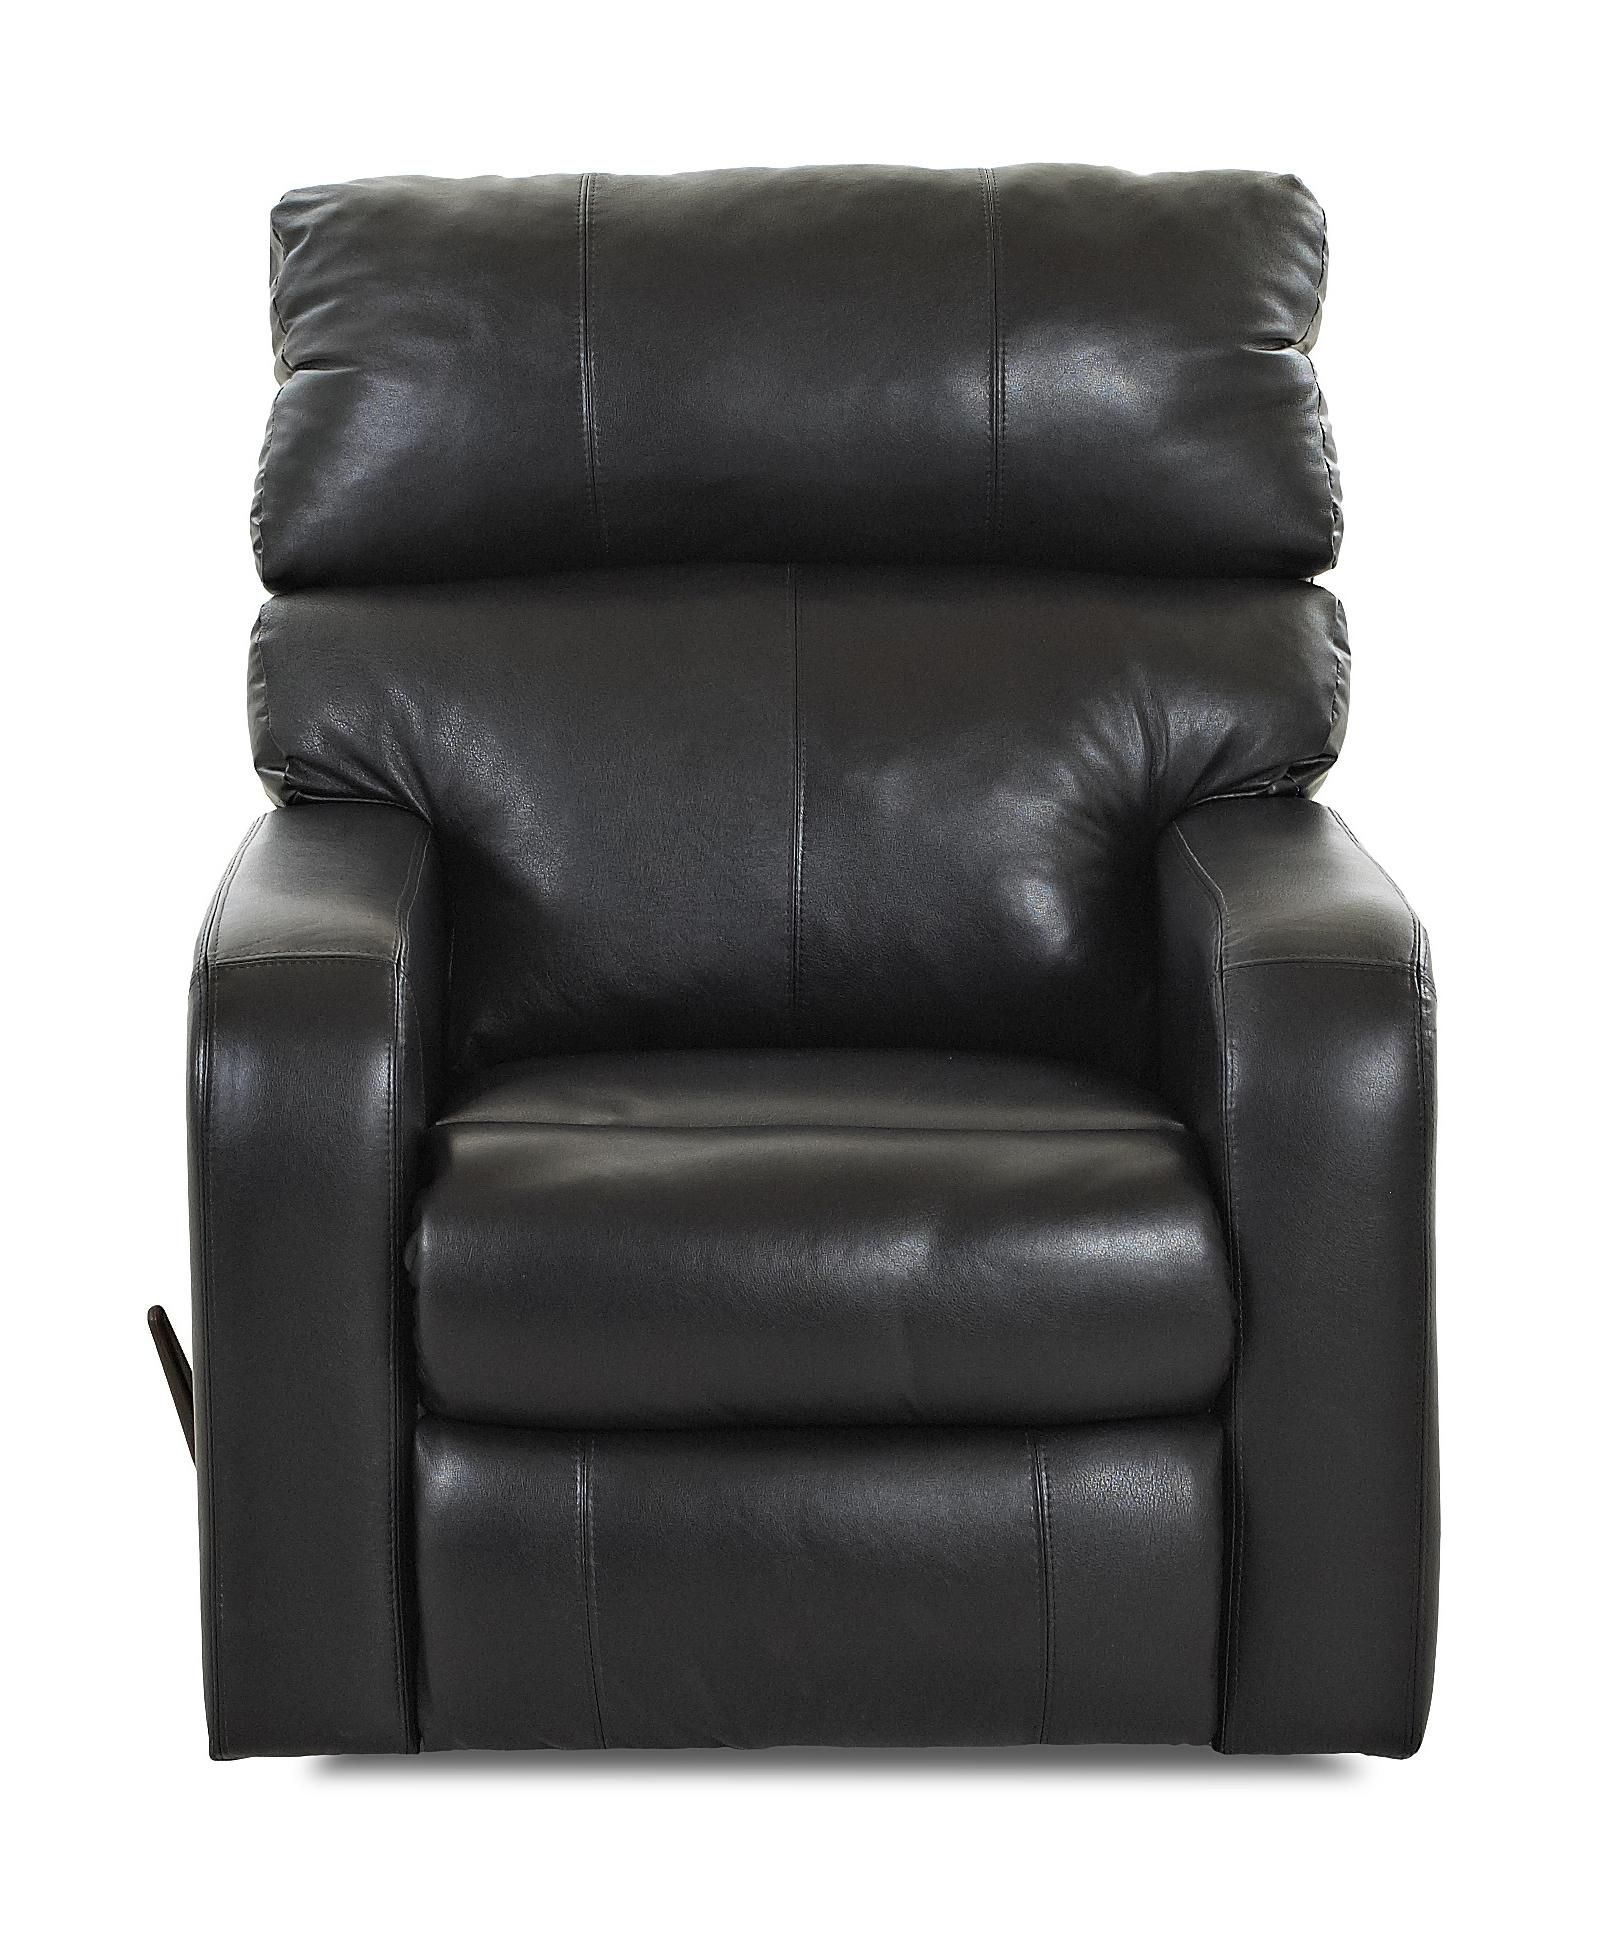 Casual Swivel Rocking Reclining Chair